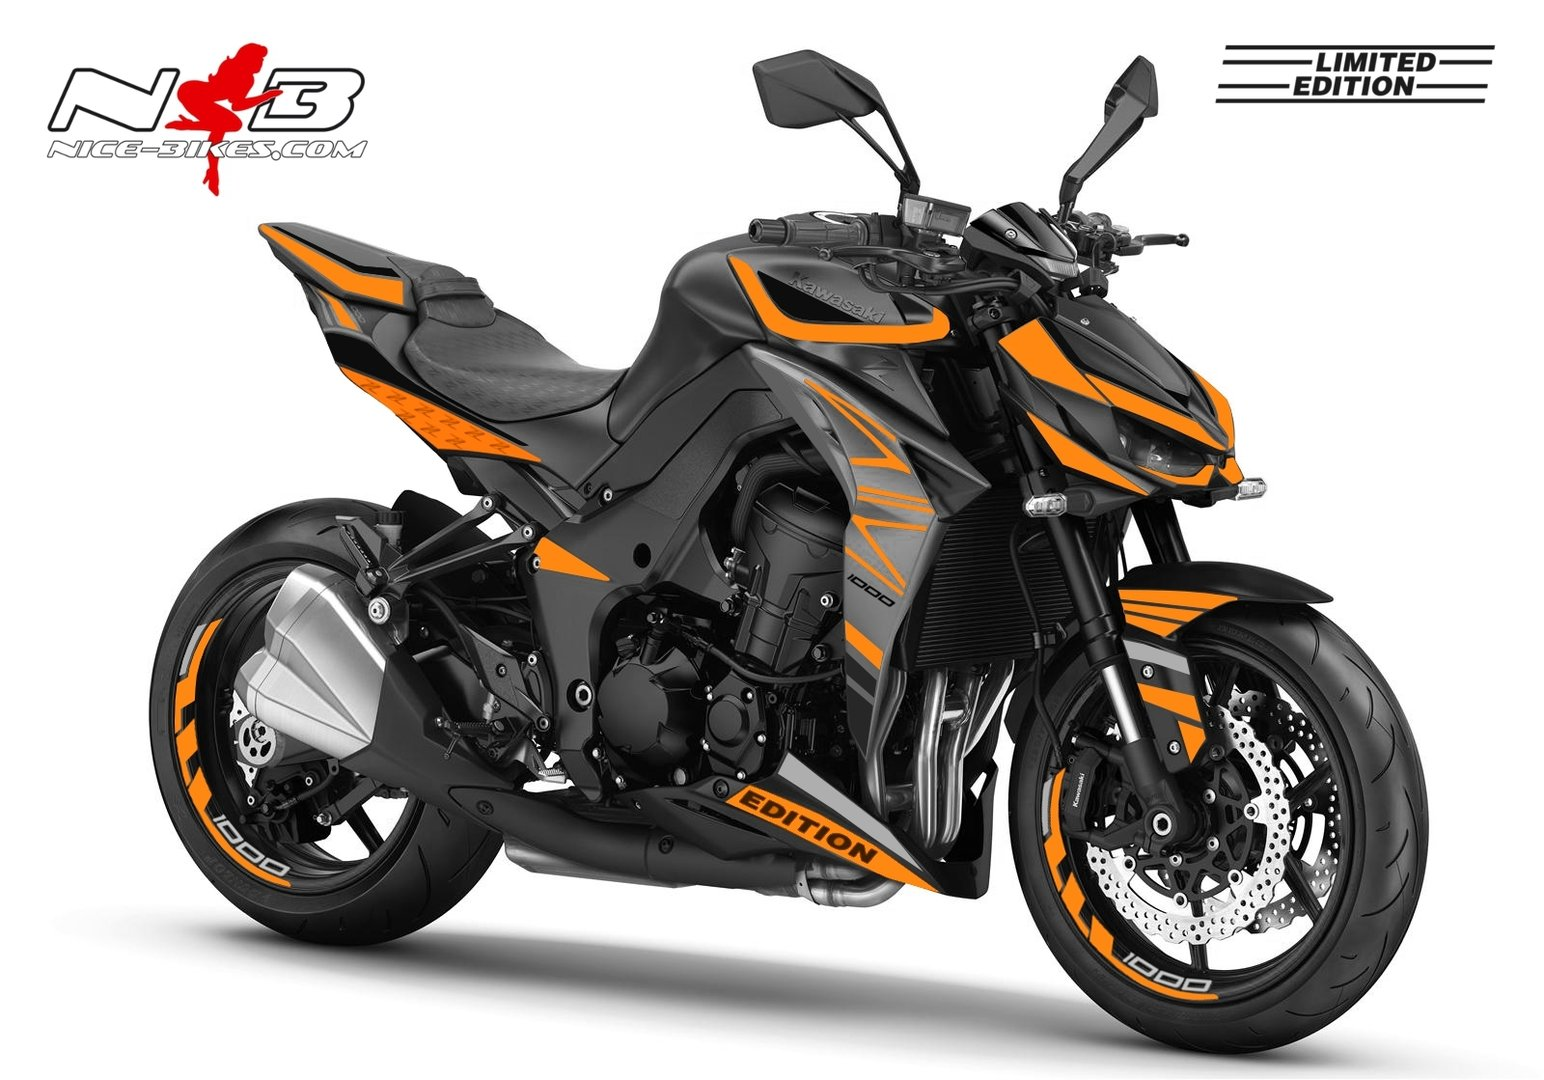 Z1000 schwarz / orange 2019